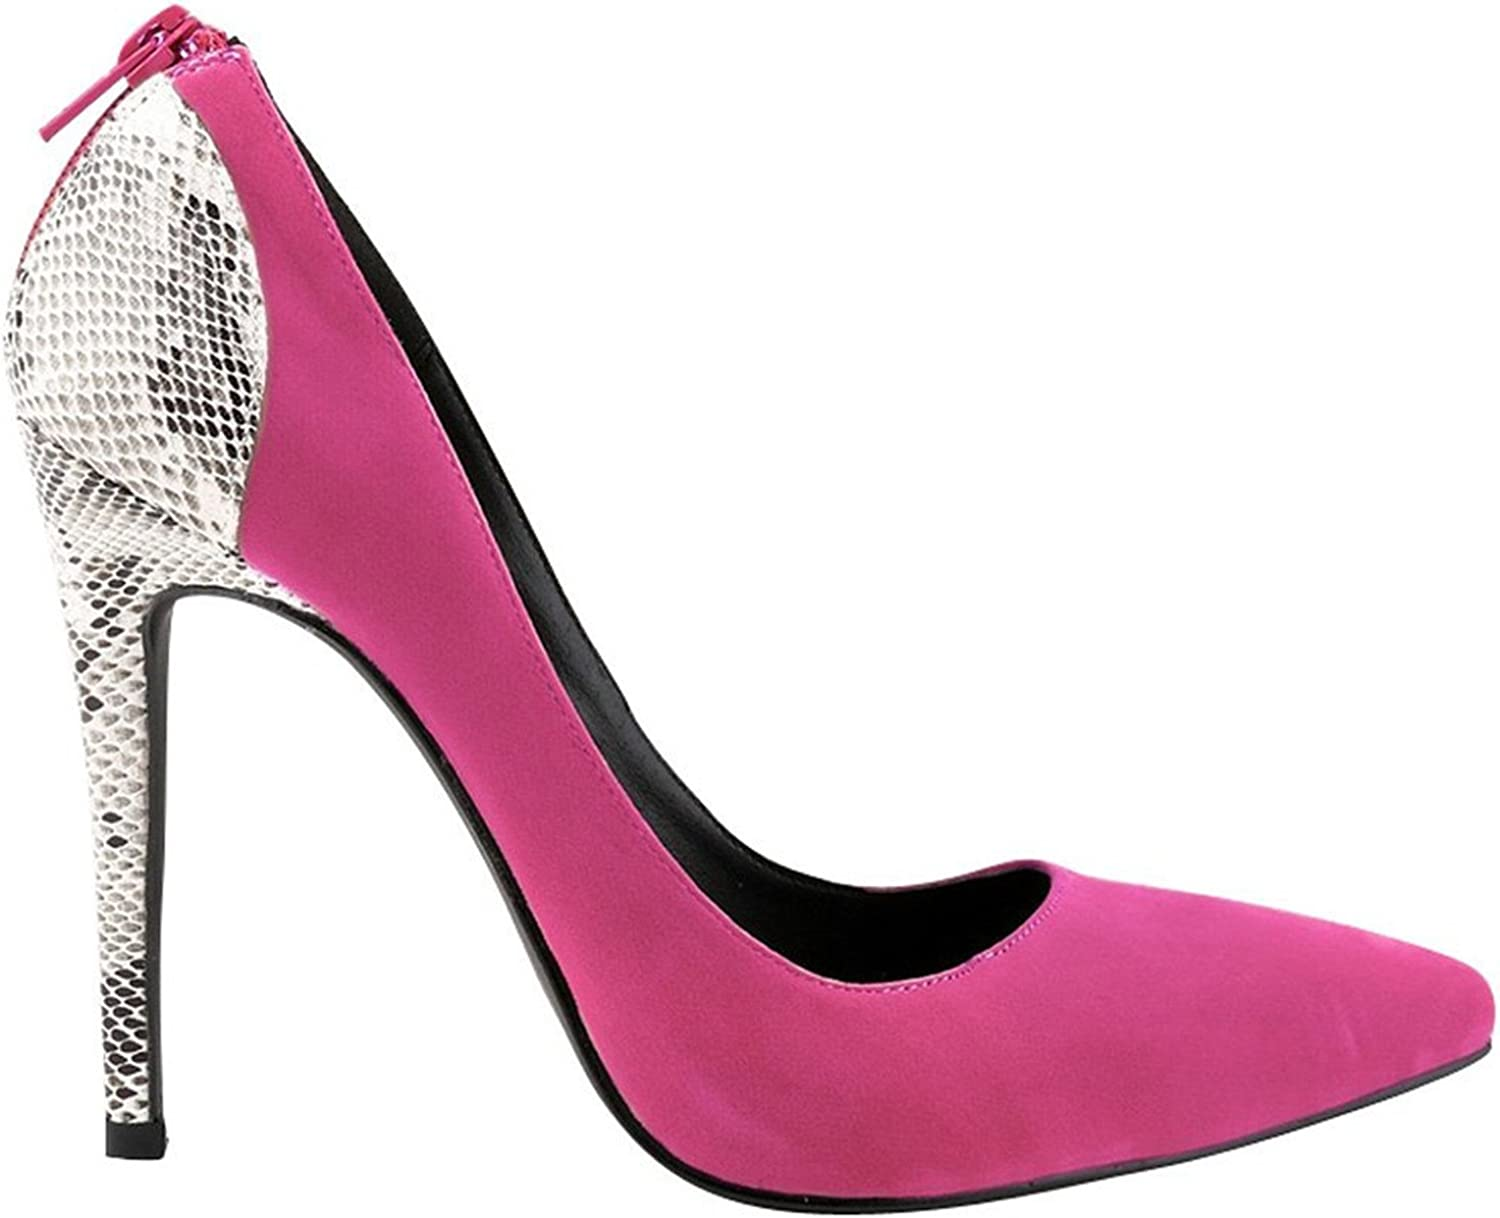 WANabcMAN Comfortable Women's Suede Pointy Stiletto High Heels Party Pumps Weeding shoes pink37 M EU